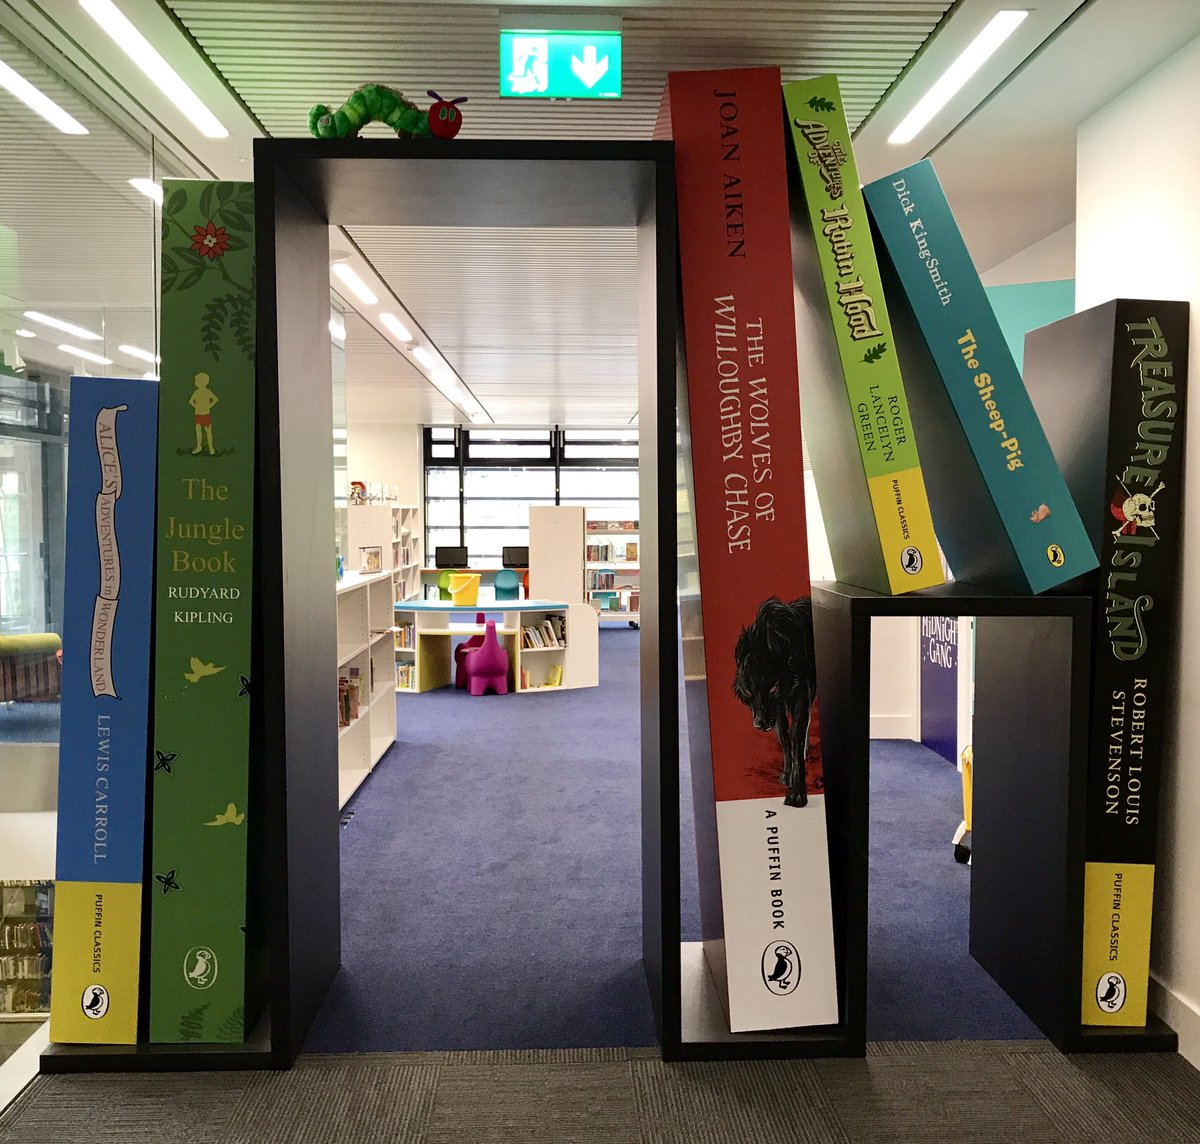 The fab walkway of giant books to the children&#39;s area of our new library #BookWorm @CMBClibraries @DickKingSmith<br>http://pic.twitter.com/uzS5gaq8Ko